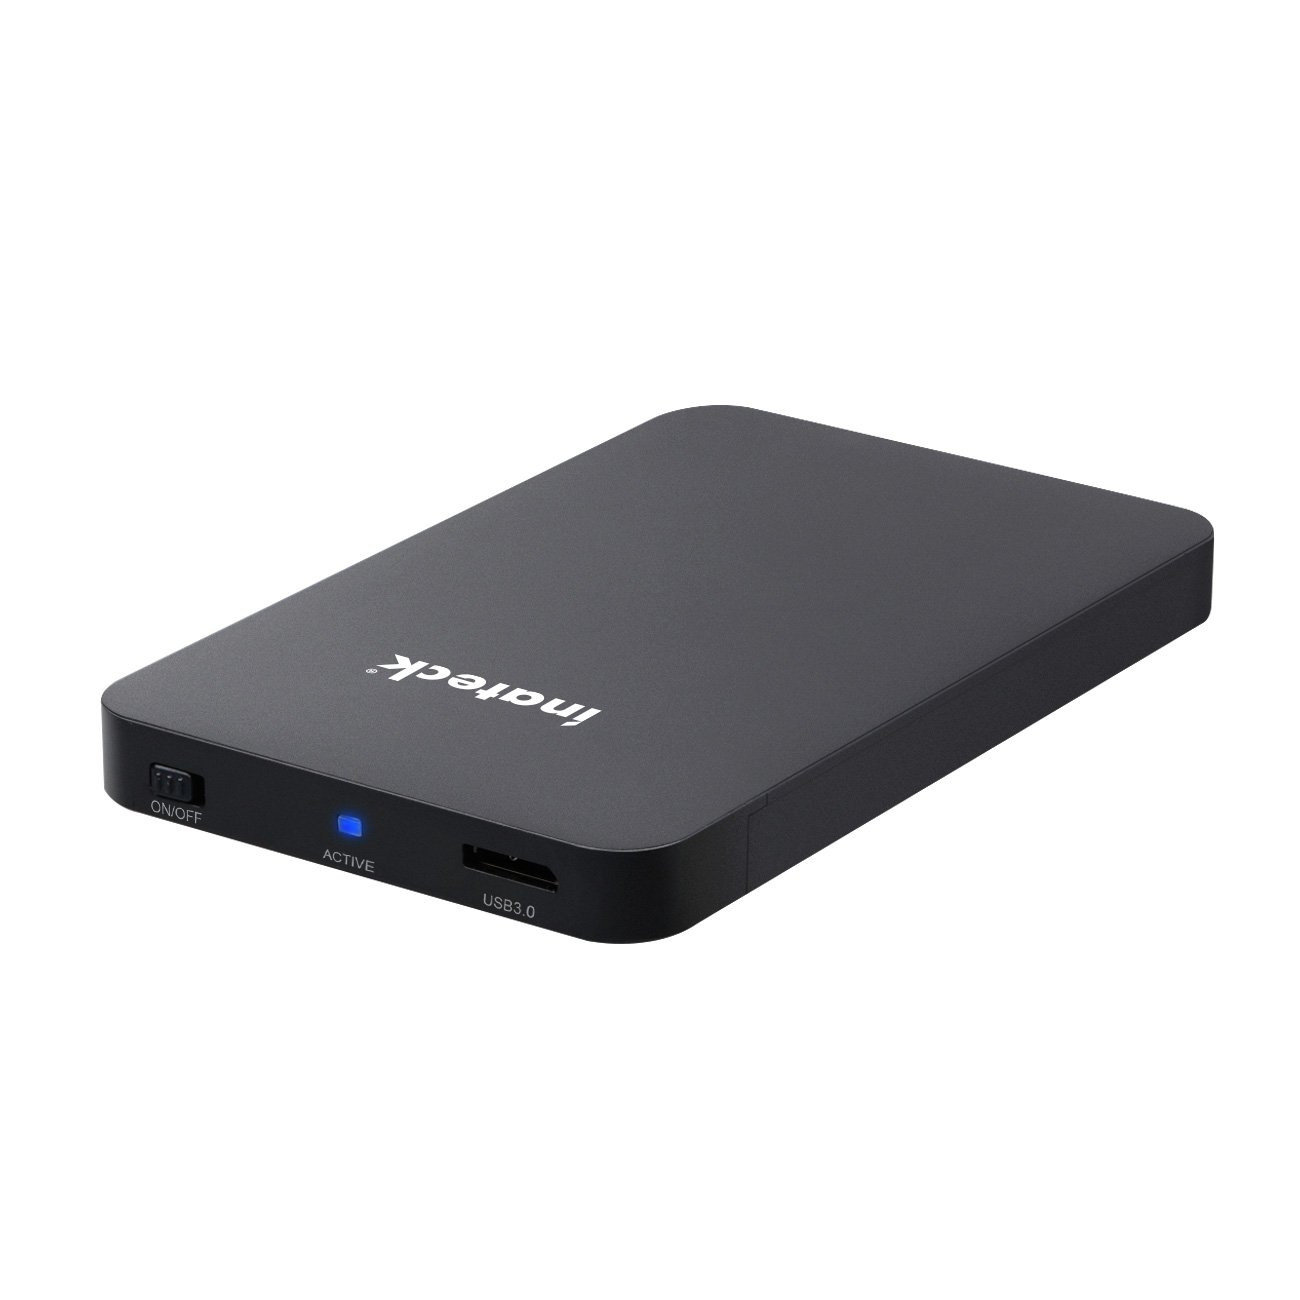 Inateck USB 3.0 External Hard Drive Enclosure Case for 9.5mm 7mm 2.5-Inch SATA HDD and SSD, Support UASP and Optimized for SSD, Tool-Free (FE2010)